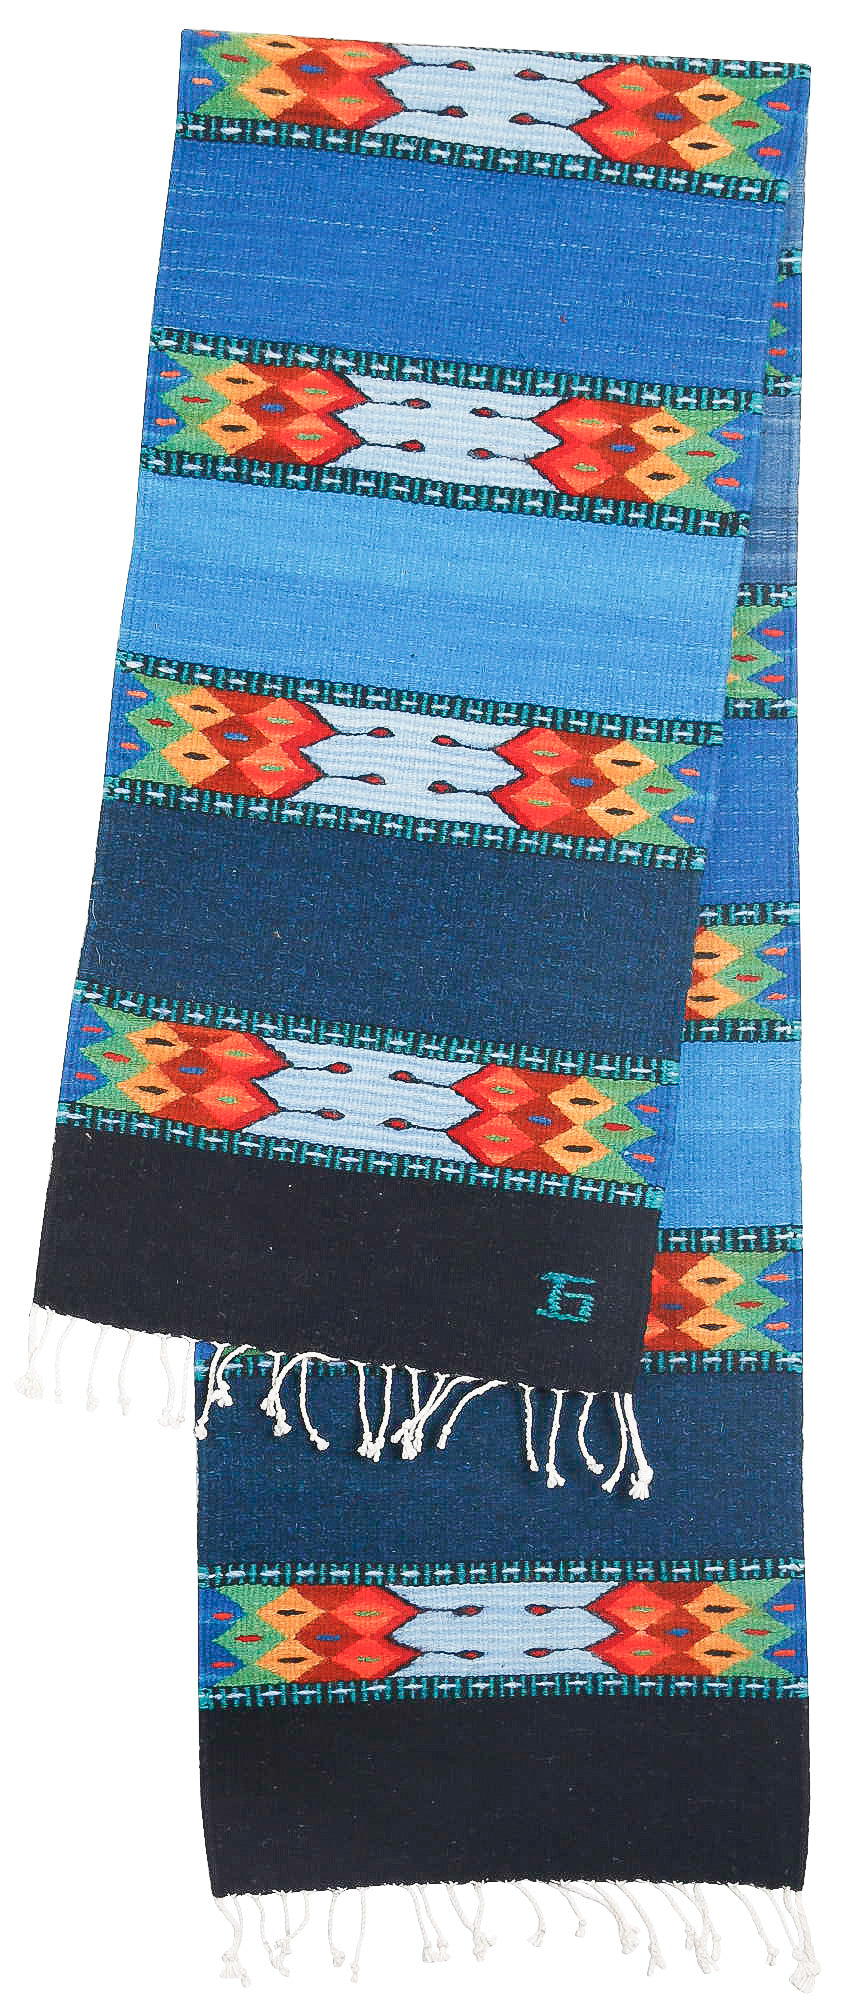 Handwoven Zapotec Indian Table Runner - La Playa Wool Oaxacan Textile